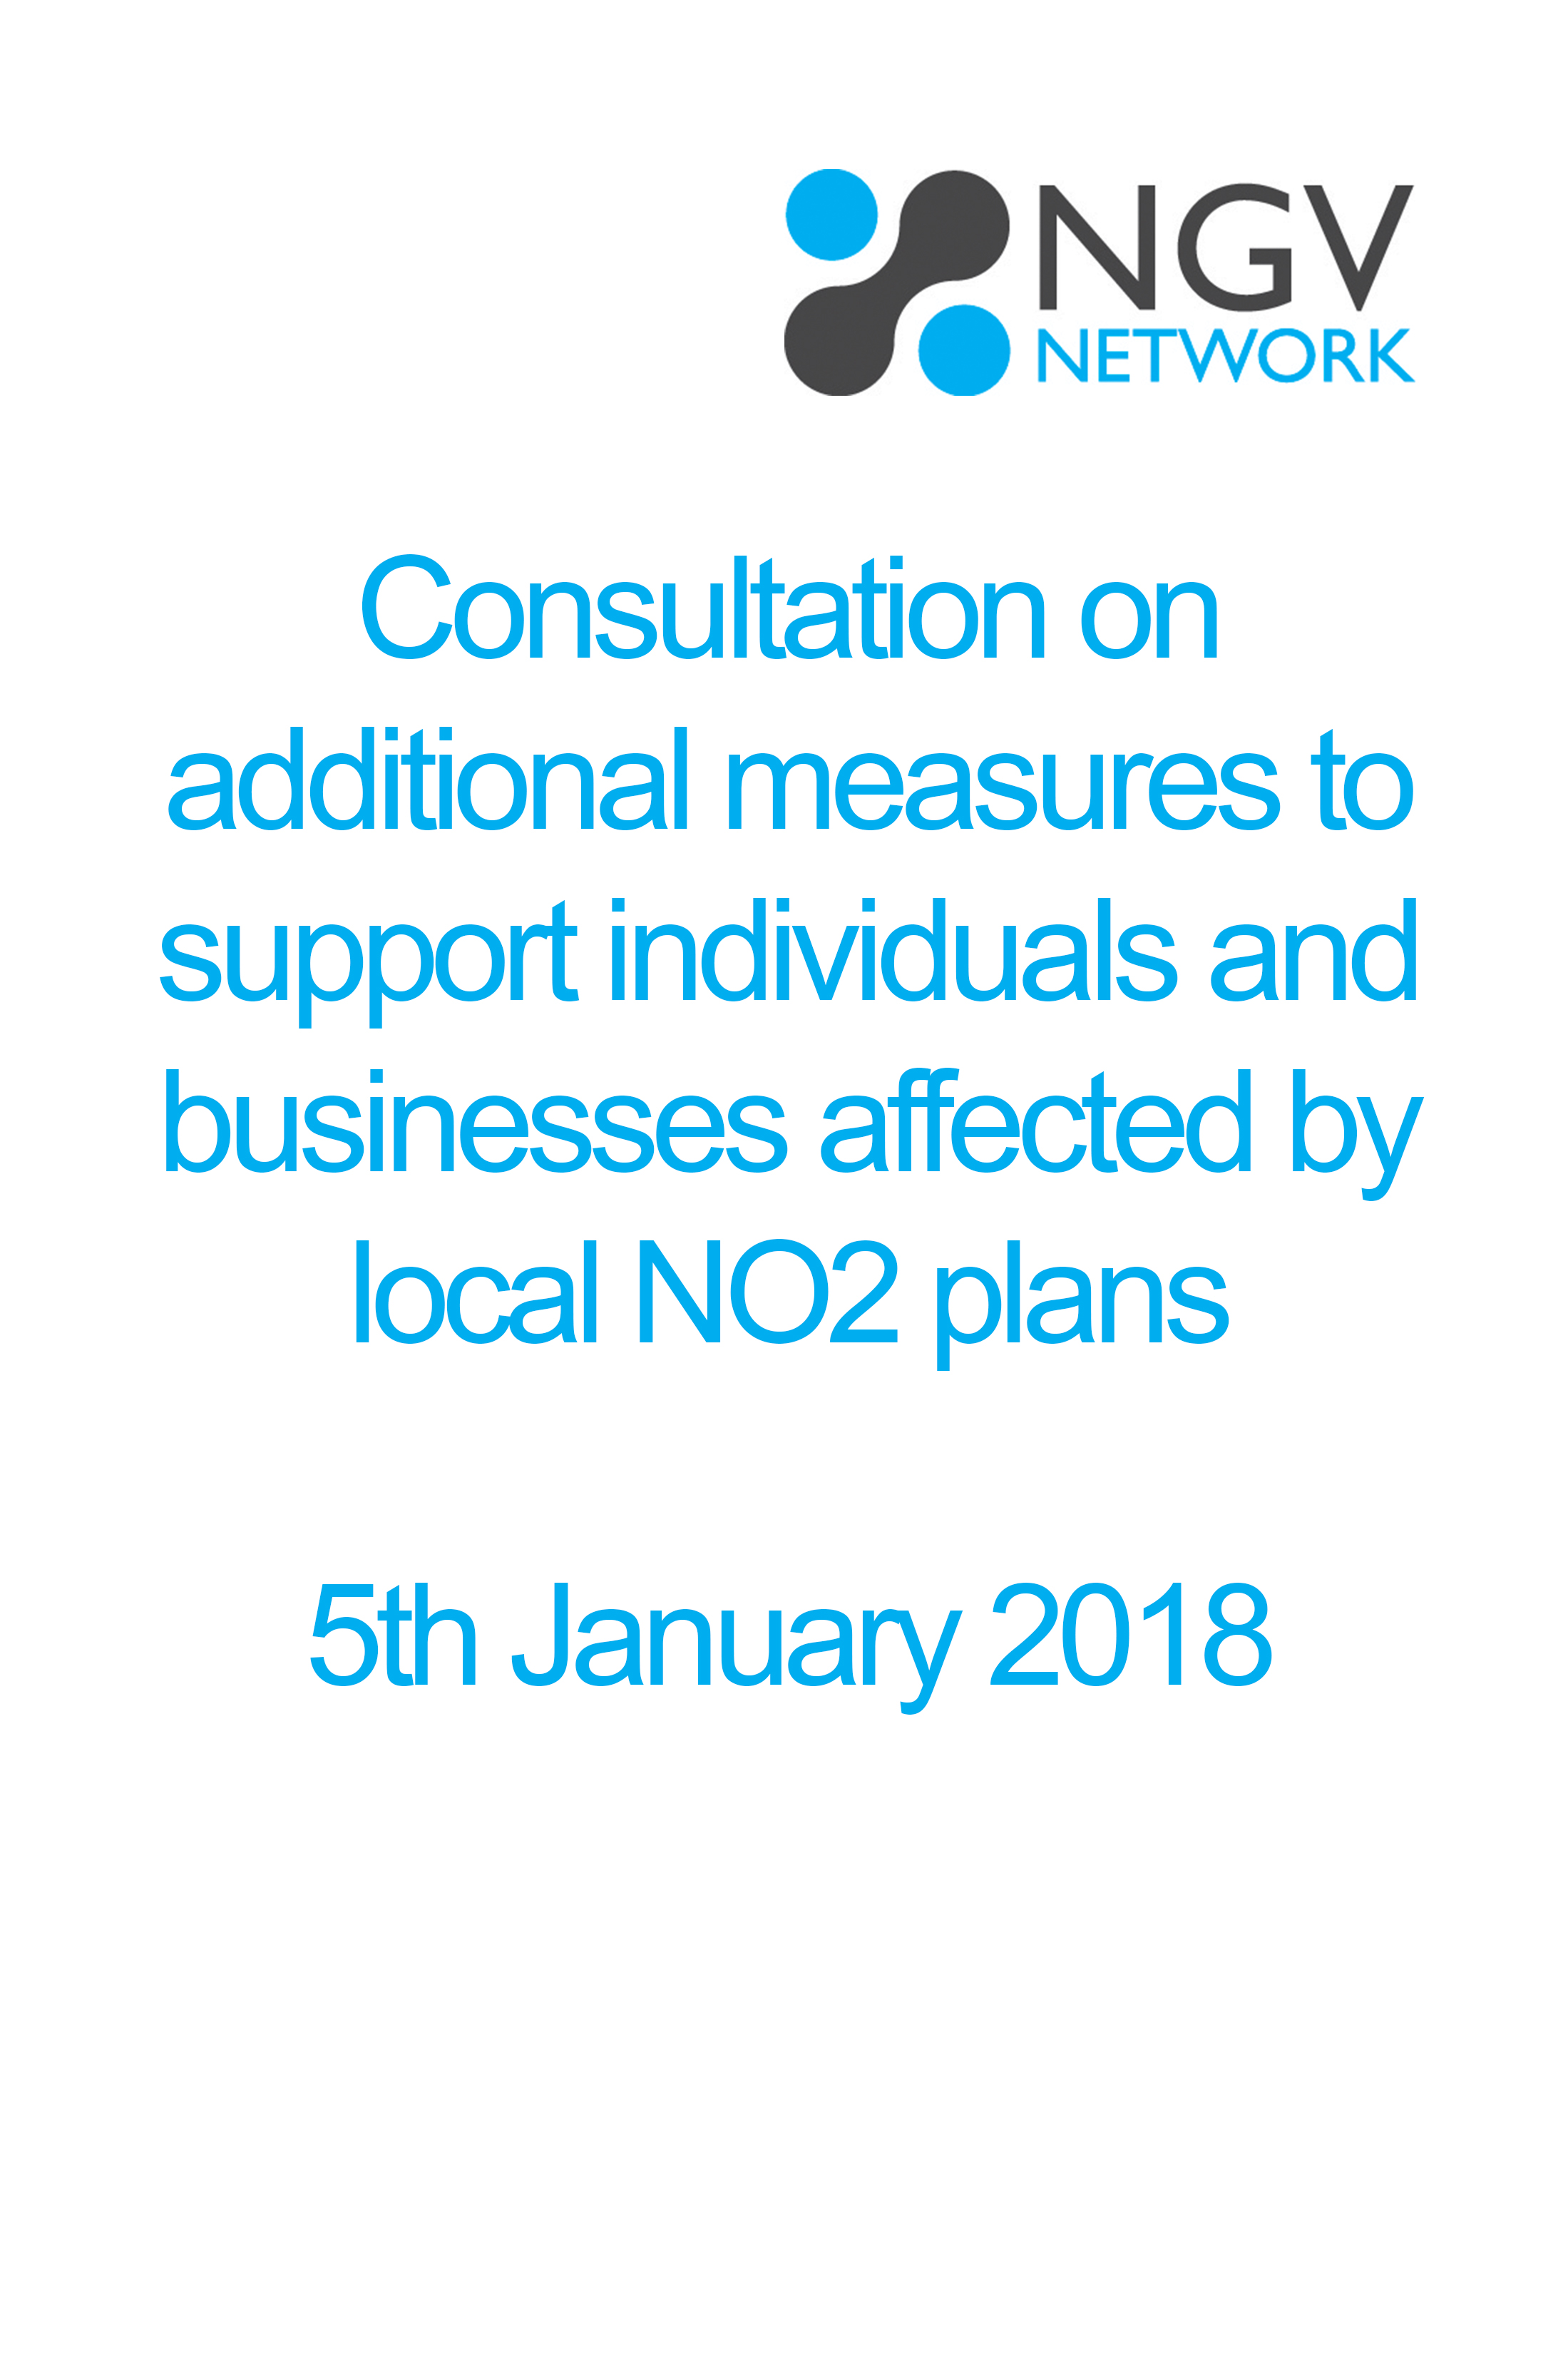 Consultation on additional measures to support individuals and businesses affected by local NO2 plans